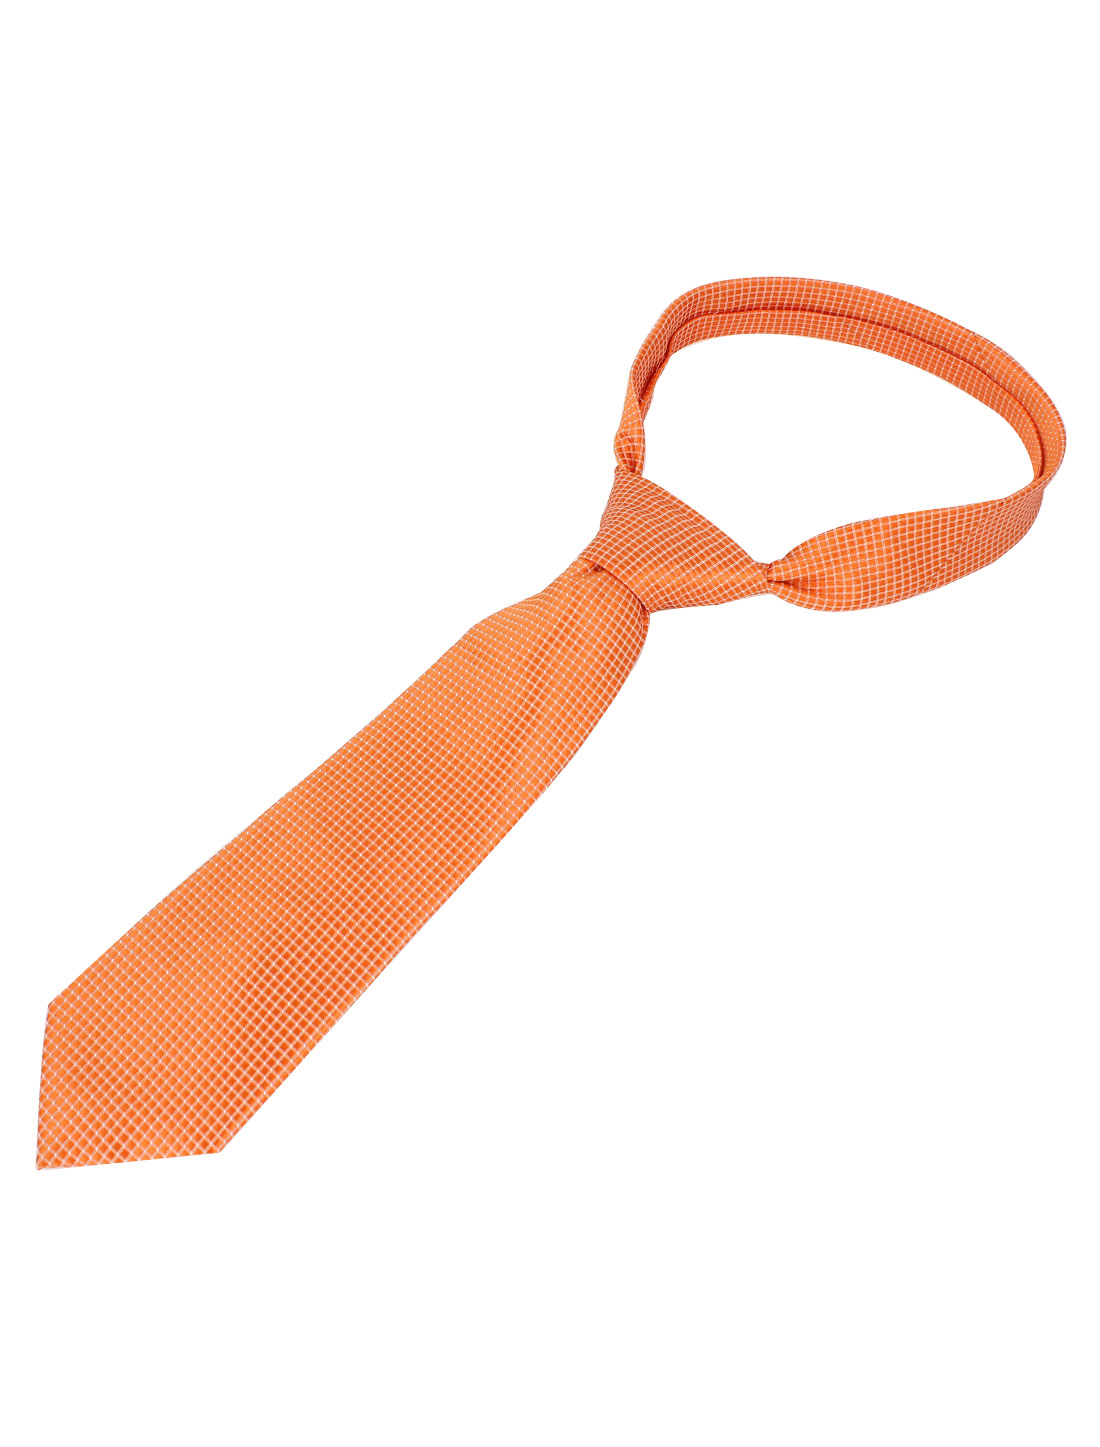 Men Grid Pattern Polyester Self Tie Adjustable Neckwear Necktie Orange